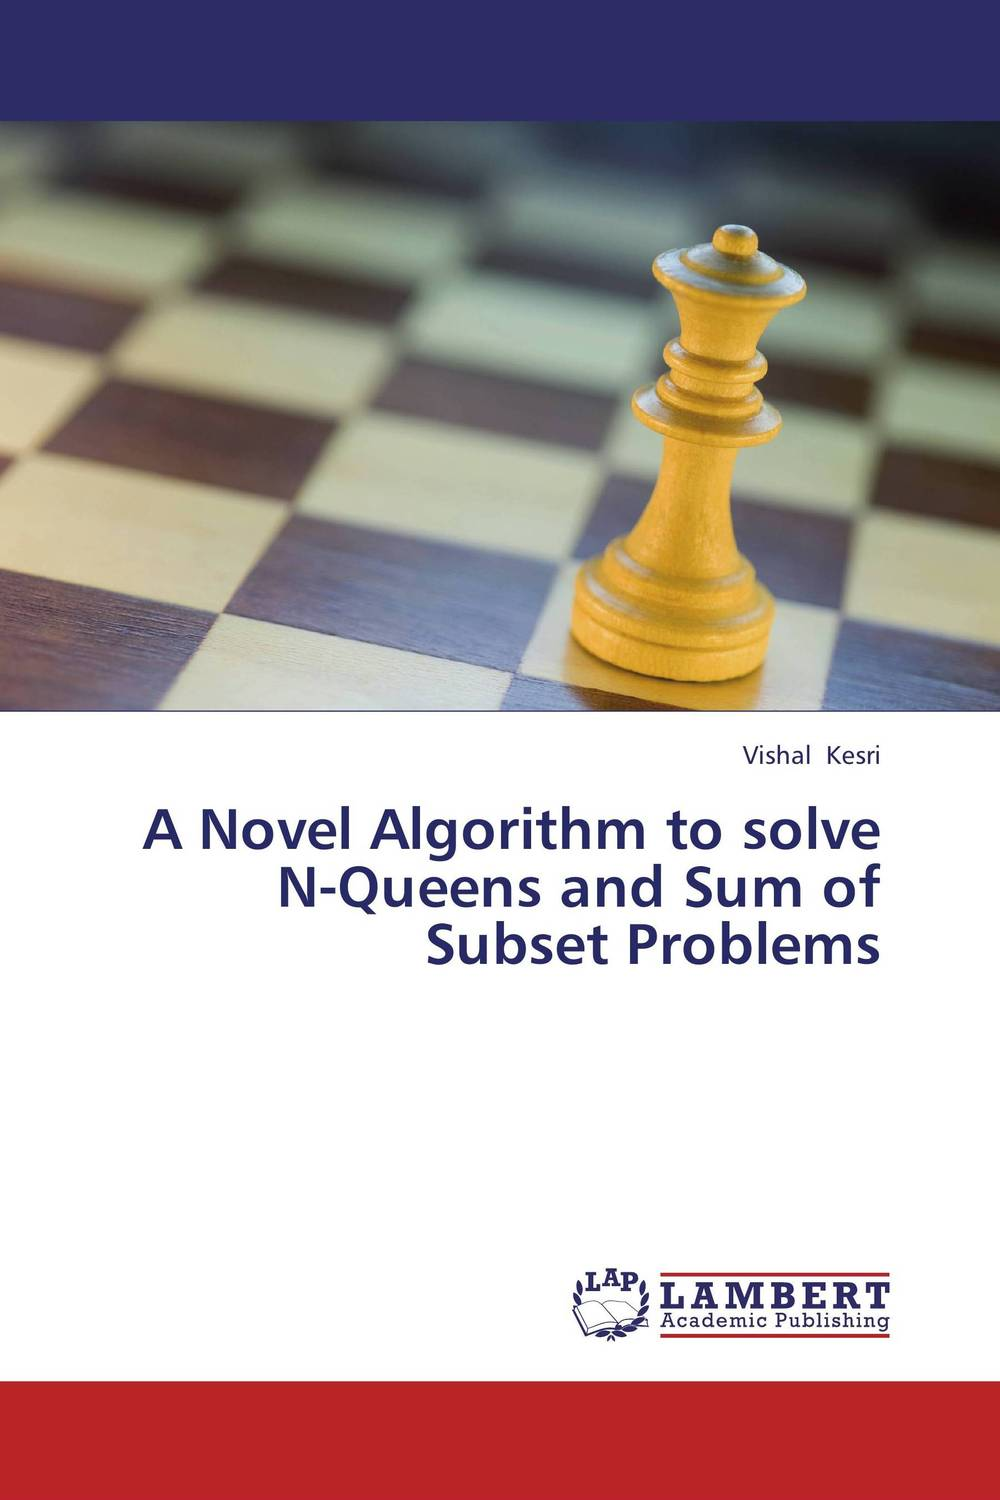 A Novel Algorithm to solve N-Queens and Sum of Subset Problems the lonely polygamist – a novel